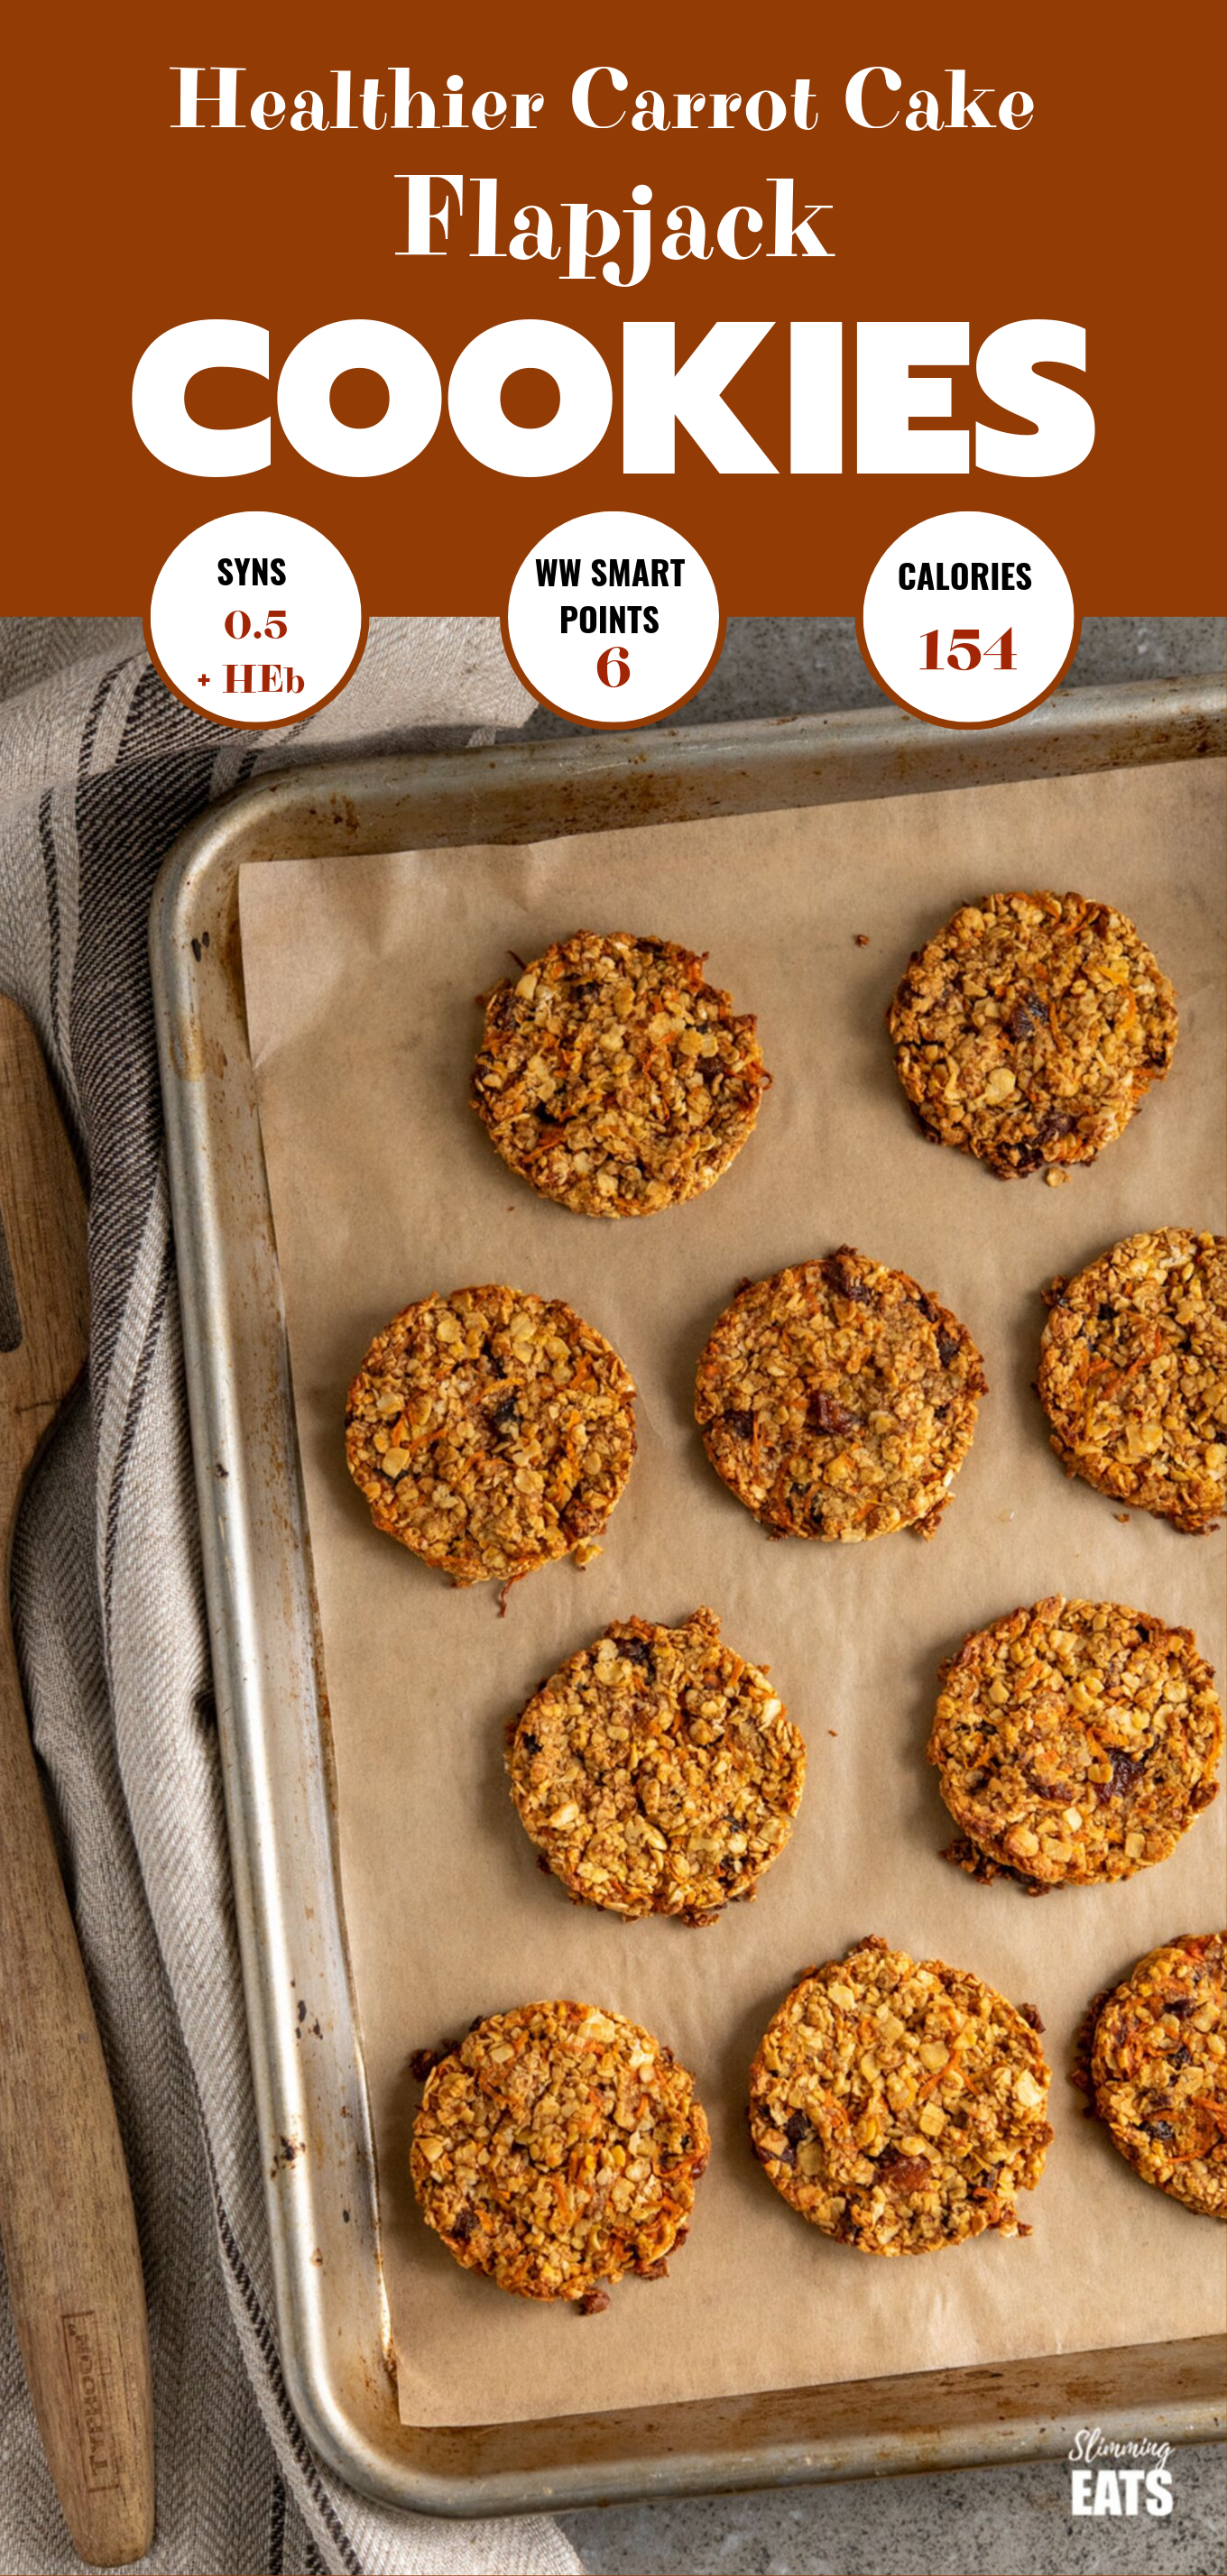 carrot cake flapjack cookies featured pin image